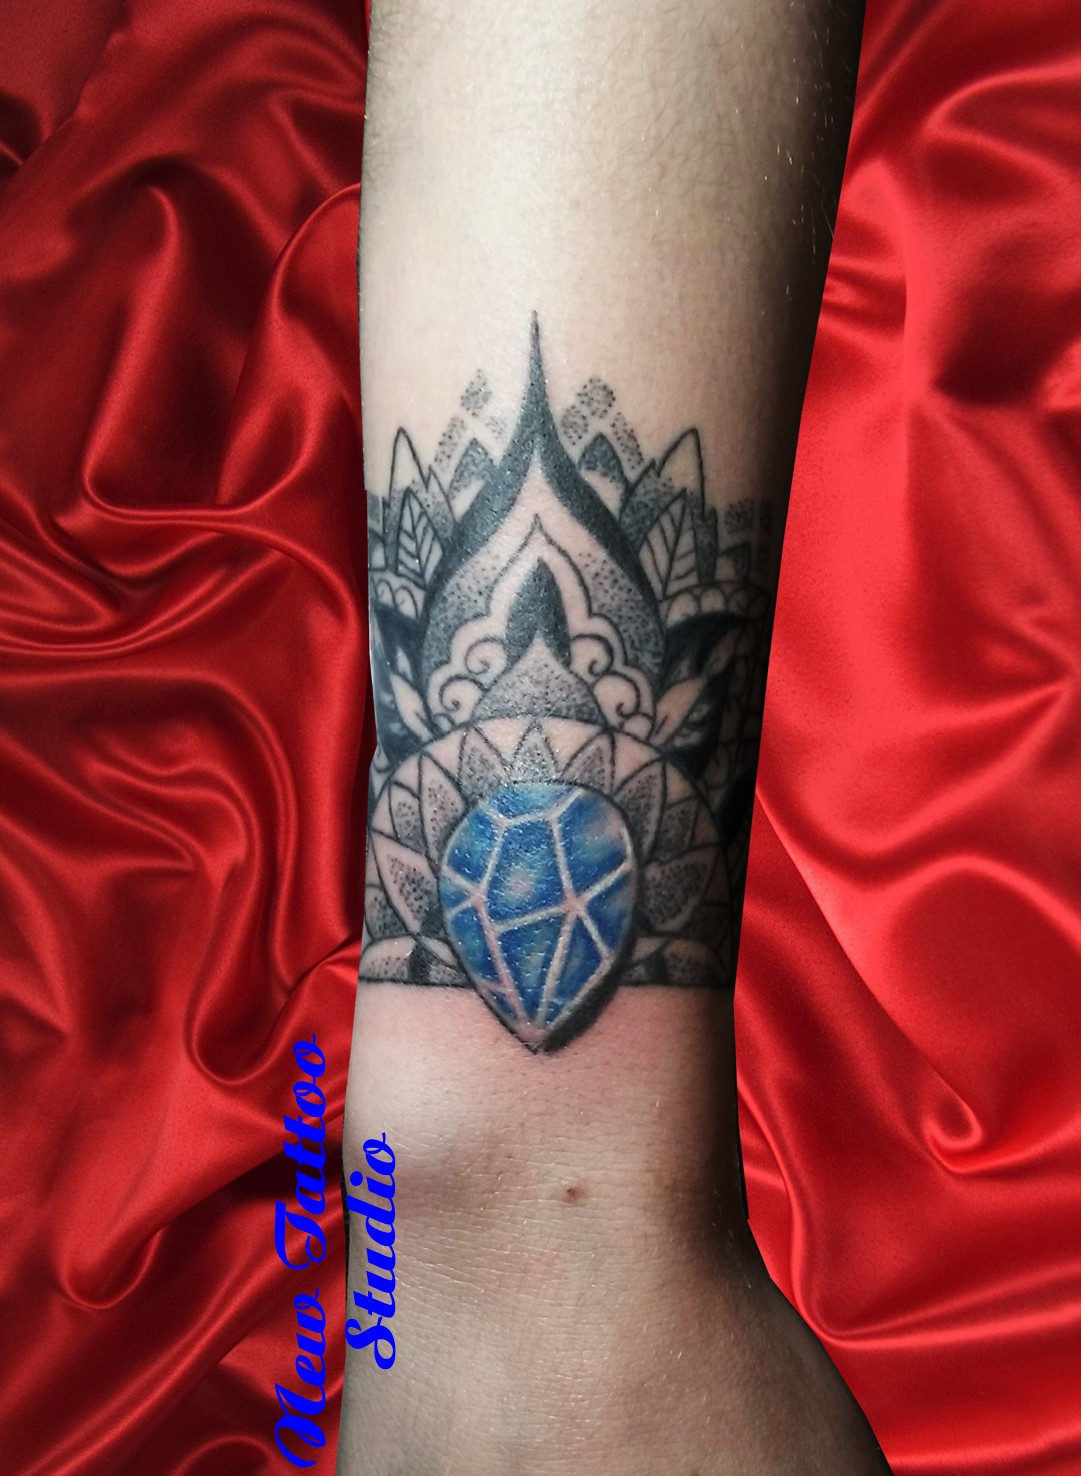 Jewel tattoo tatouage poignet mandala new tattoo studio - Tatouage poignet mandala ...